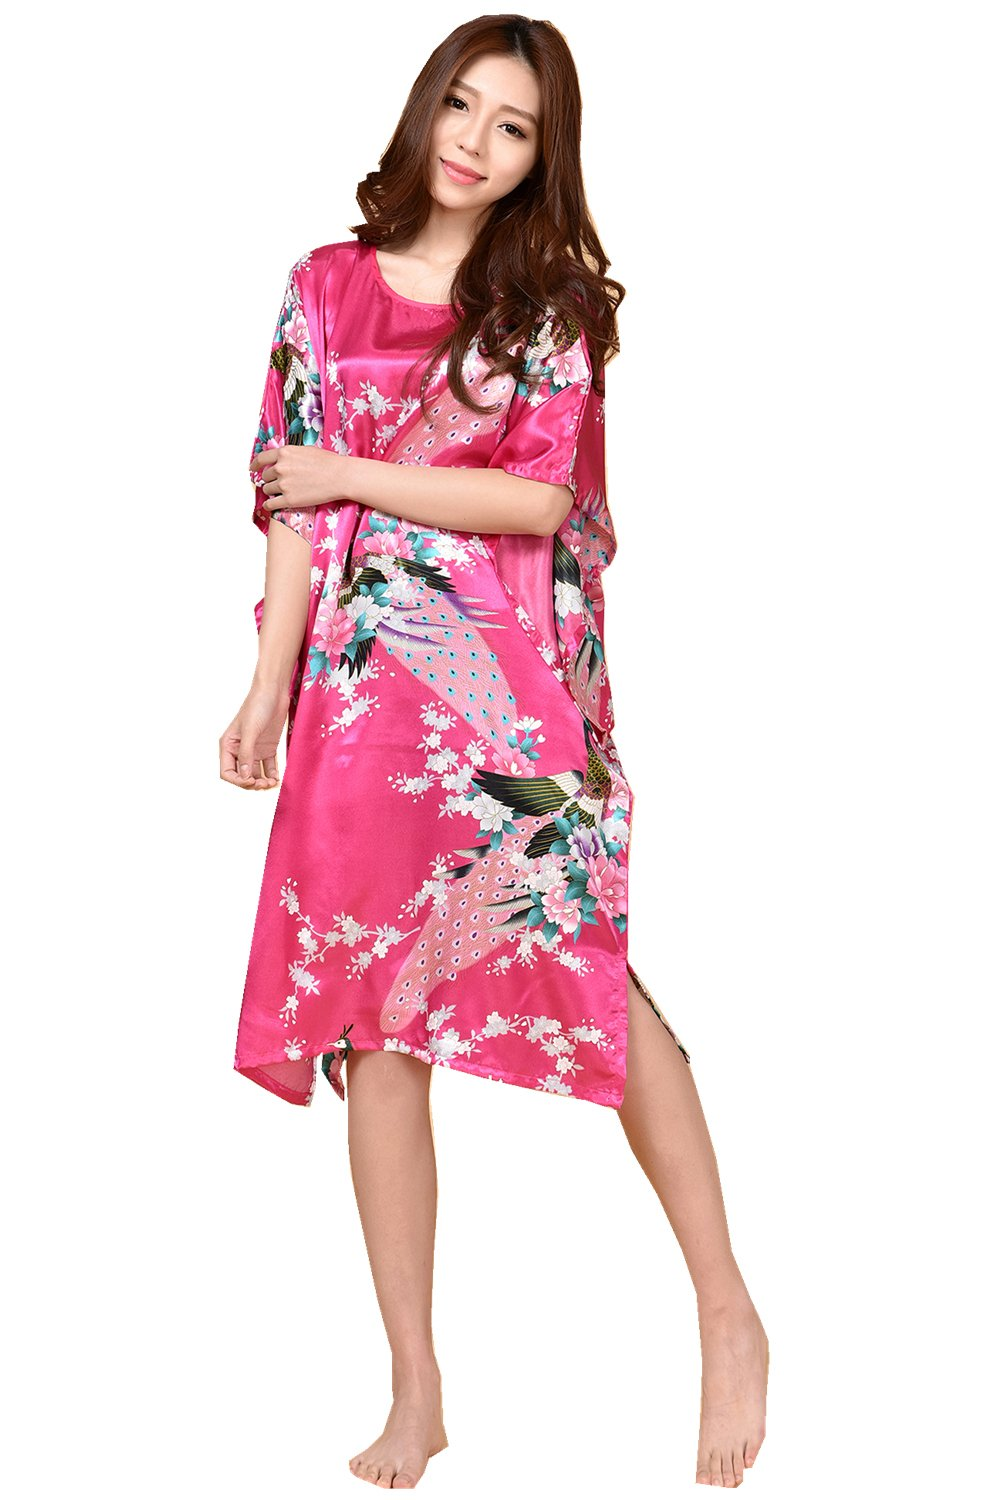 GL&G Animal pattern lady silk bathrobe thin section pajamas printing single skirt loose large yards home service comfortable rose red bathrobes,rose Red,One size